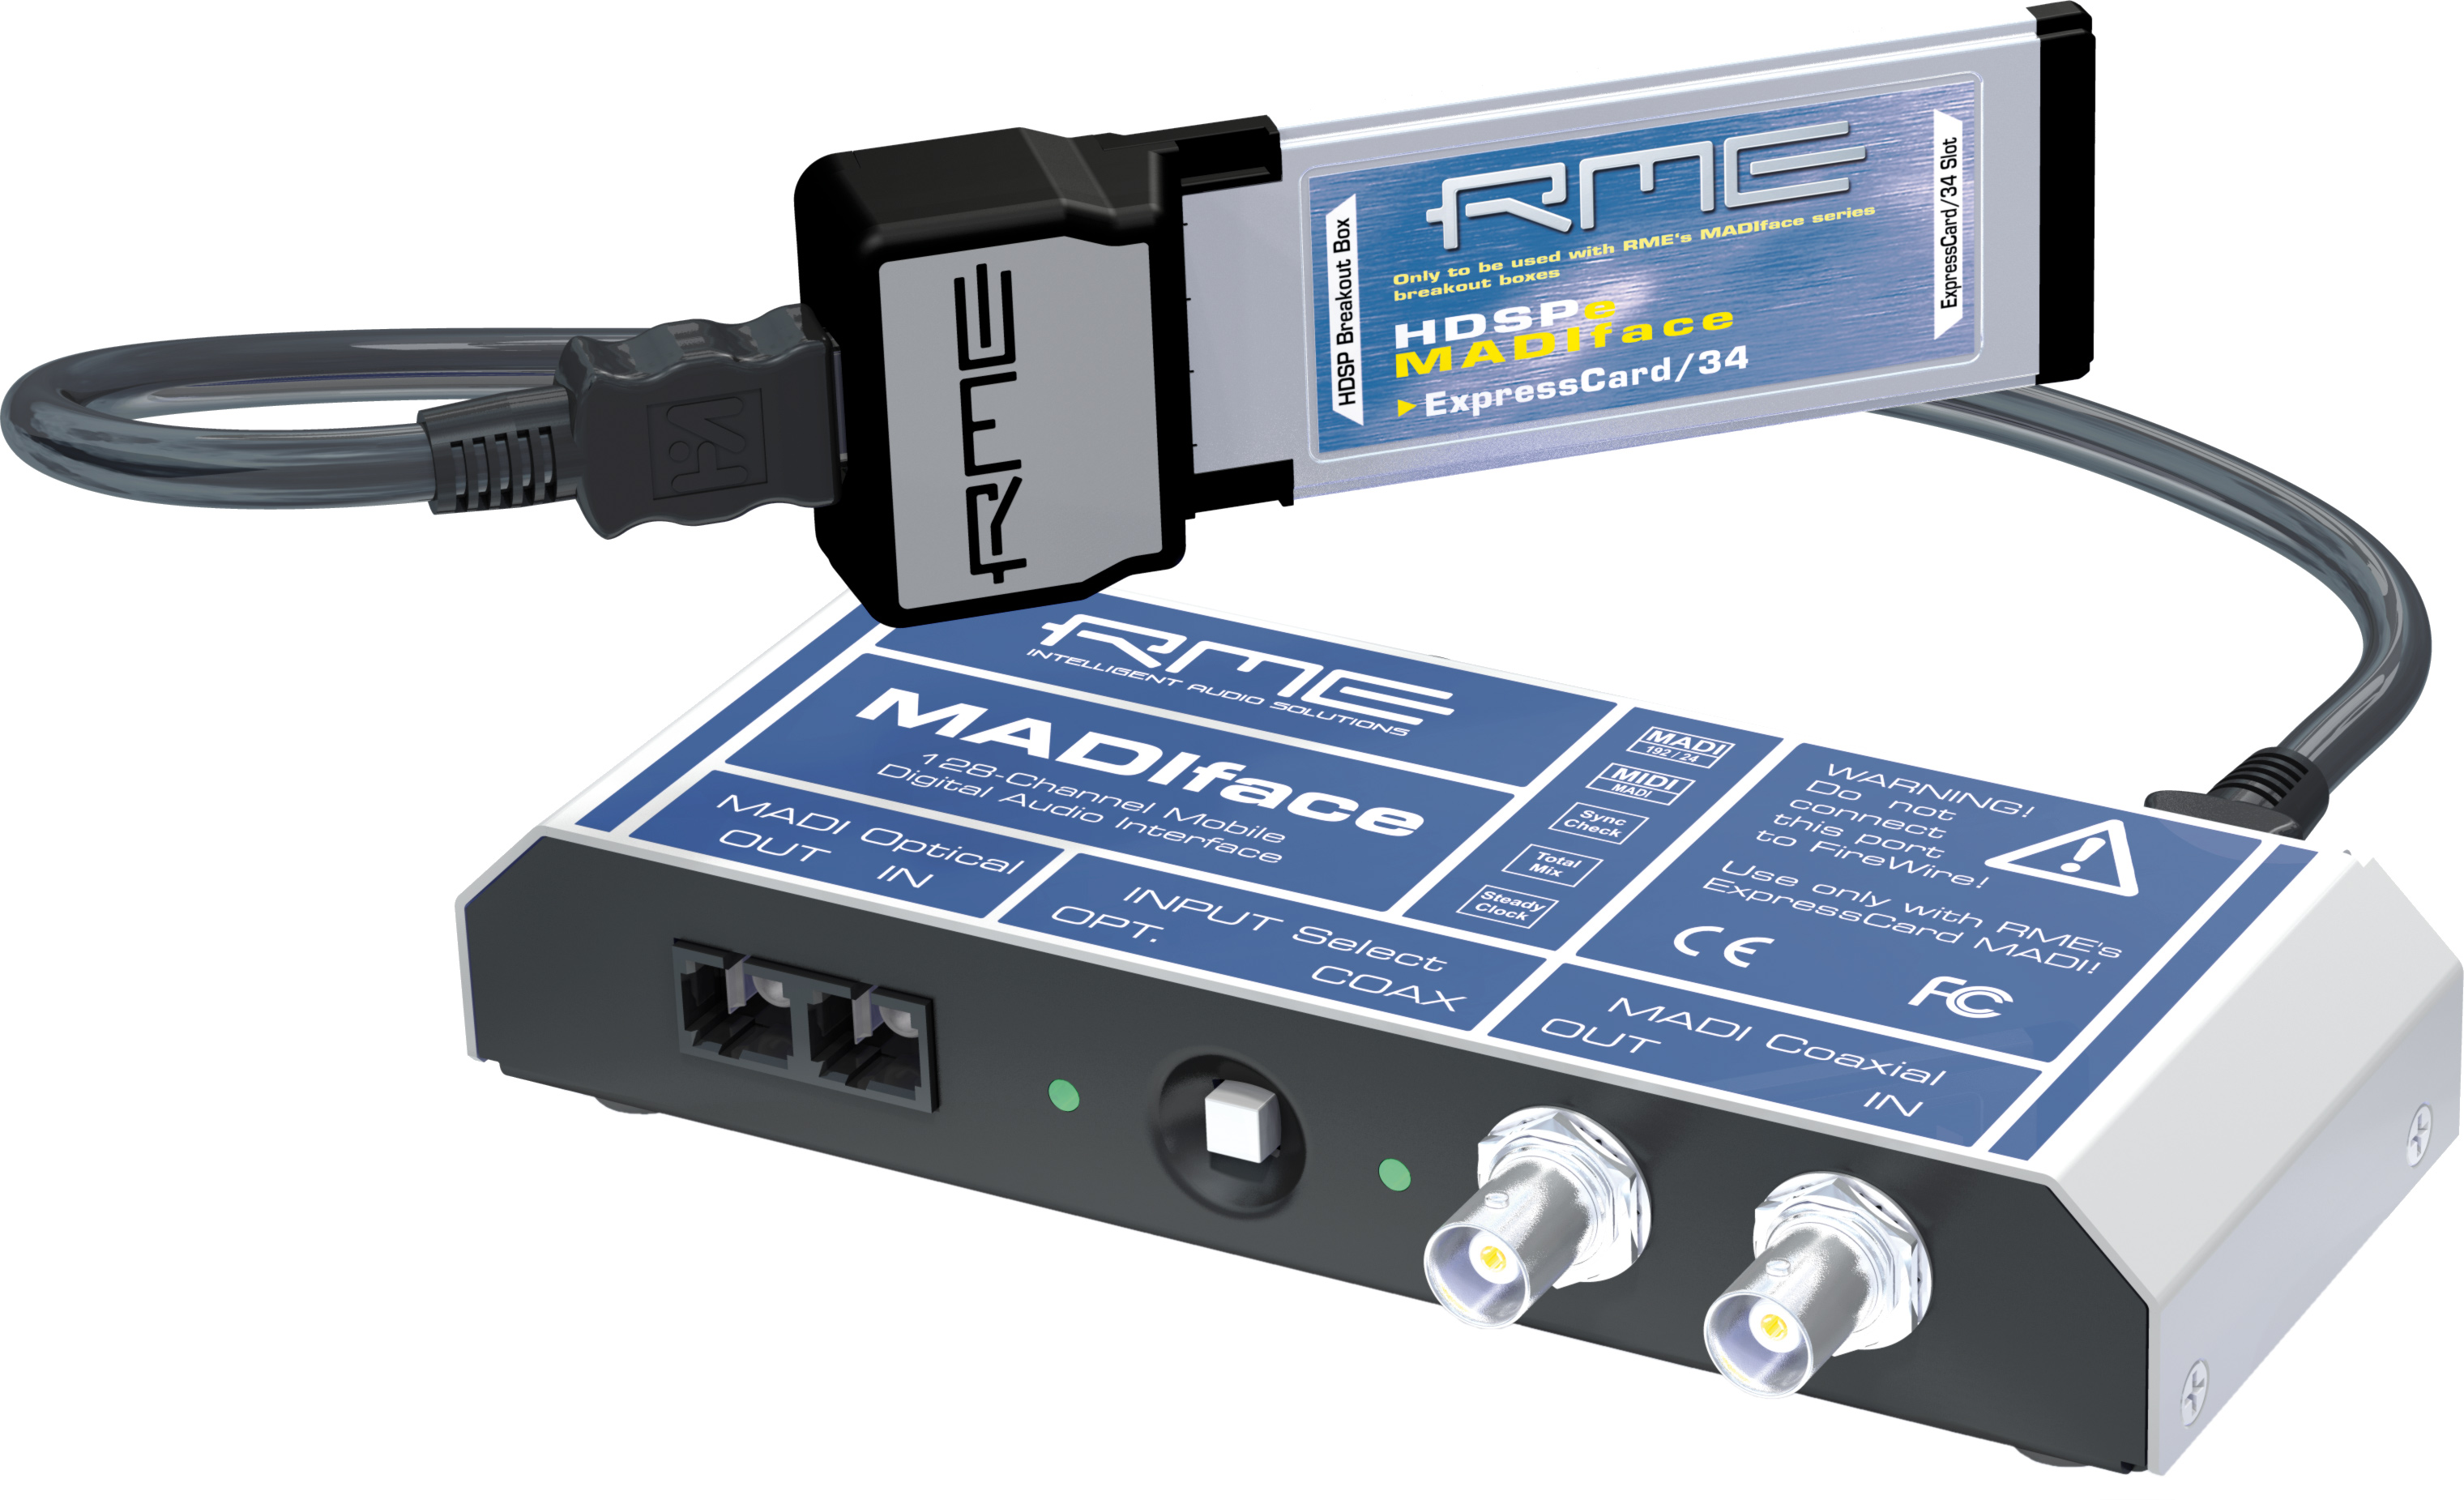 NEW DRIVERS: RME MADIFACE USB